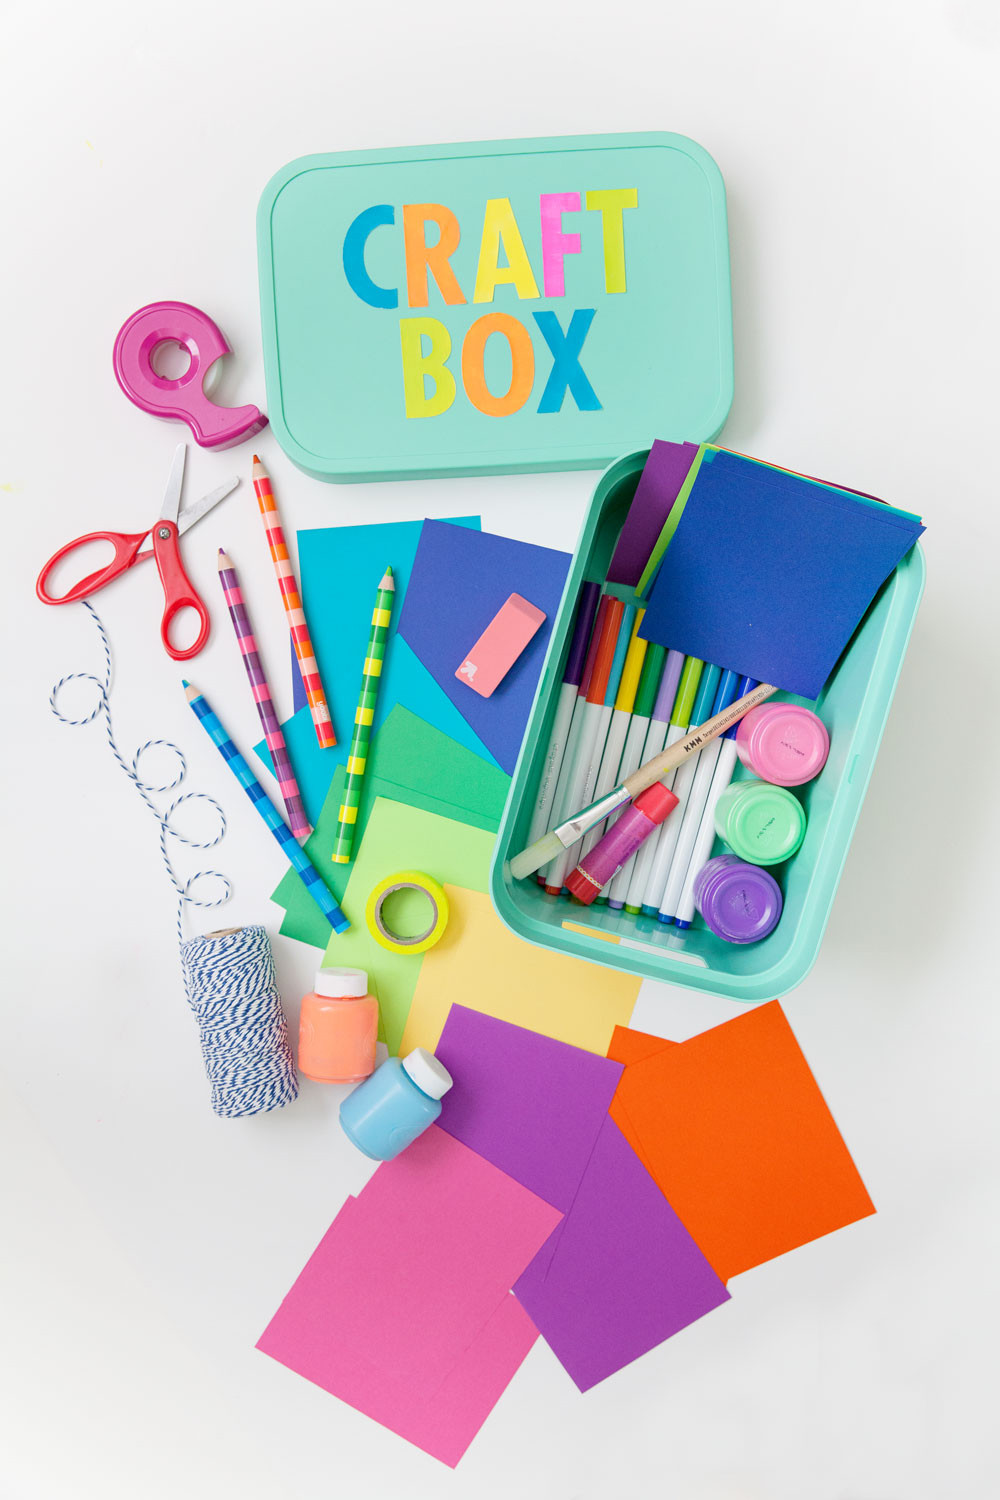 Kids DIY Projects  TIPS ON CRAFTING WITH KIDS A FUN DIY Tell Love and Party